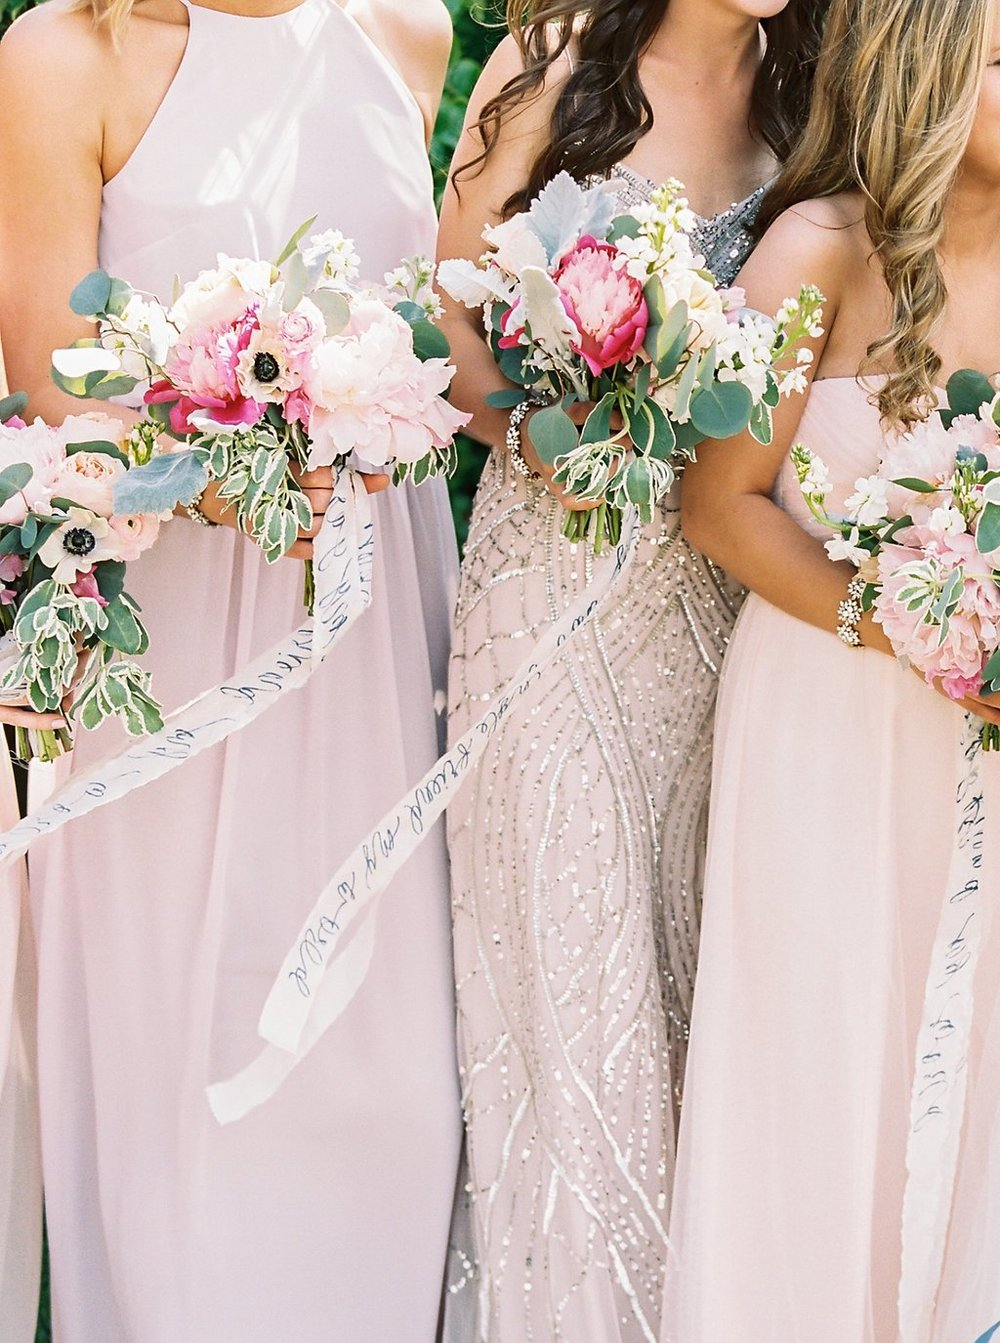 Blush Mix and Match Bridesmaids Dresses from BHLDN with Navy Calligraphy on Ivory Silk Bouquet Ribbon from FrouFrou Chic | Blush and Navy Wedding with Fuchsia, French Blue and Gold Accents | Simply Jessica Marie's Southern Wedding at Gettysvue Golf Course and Country Club in Knoxville Tennessee | Photo by Perry Vaile Photography